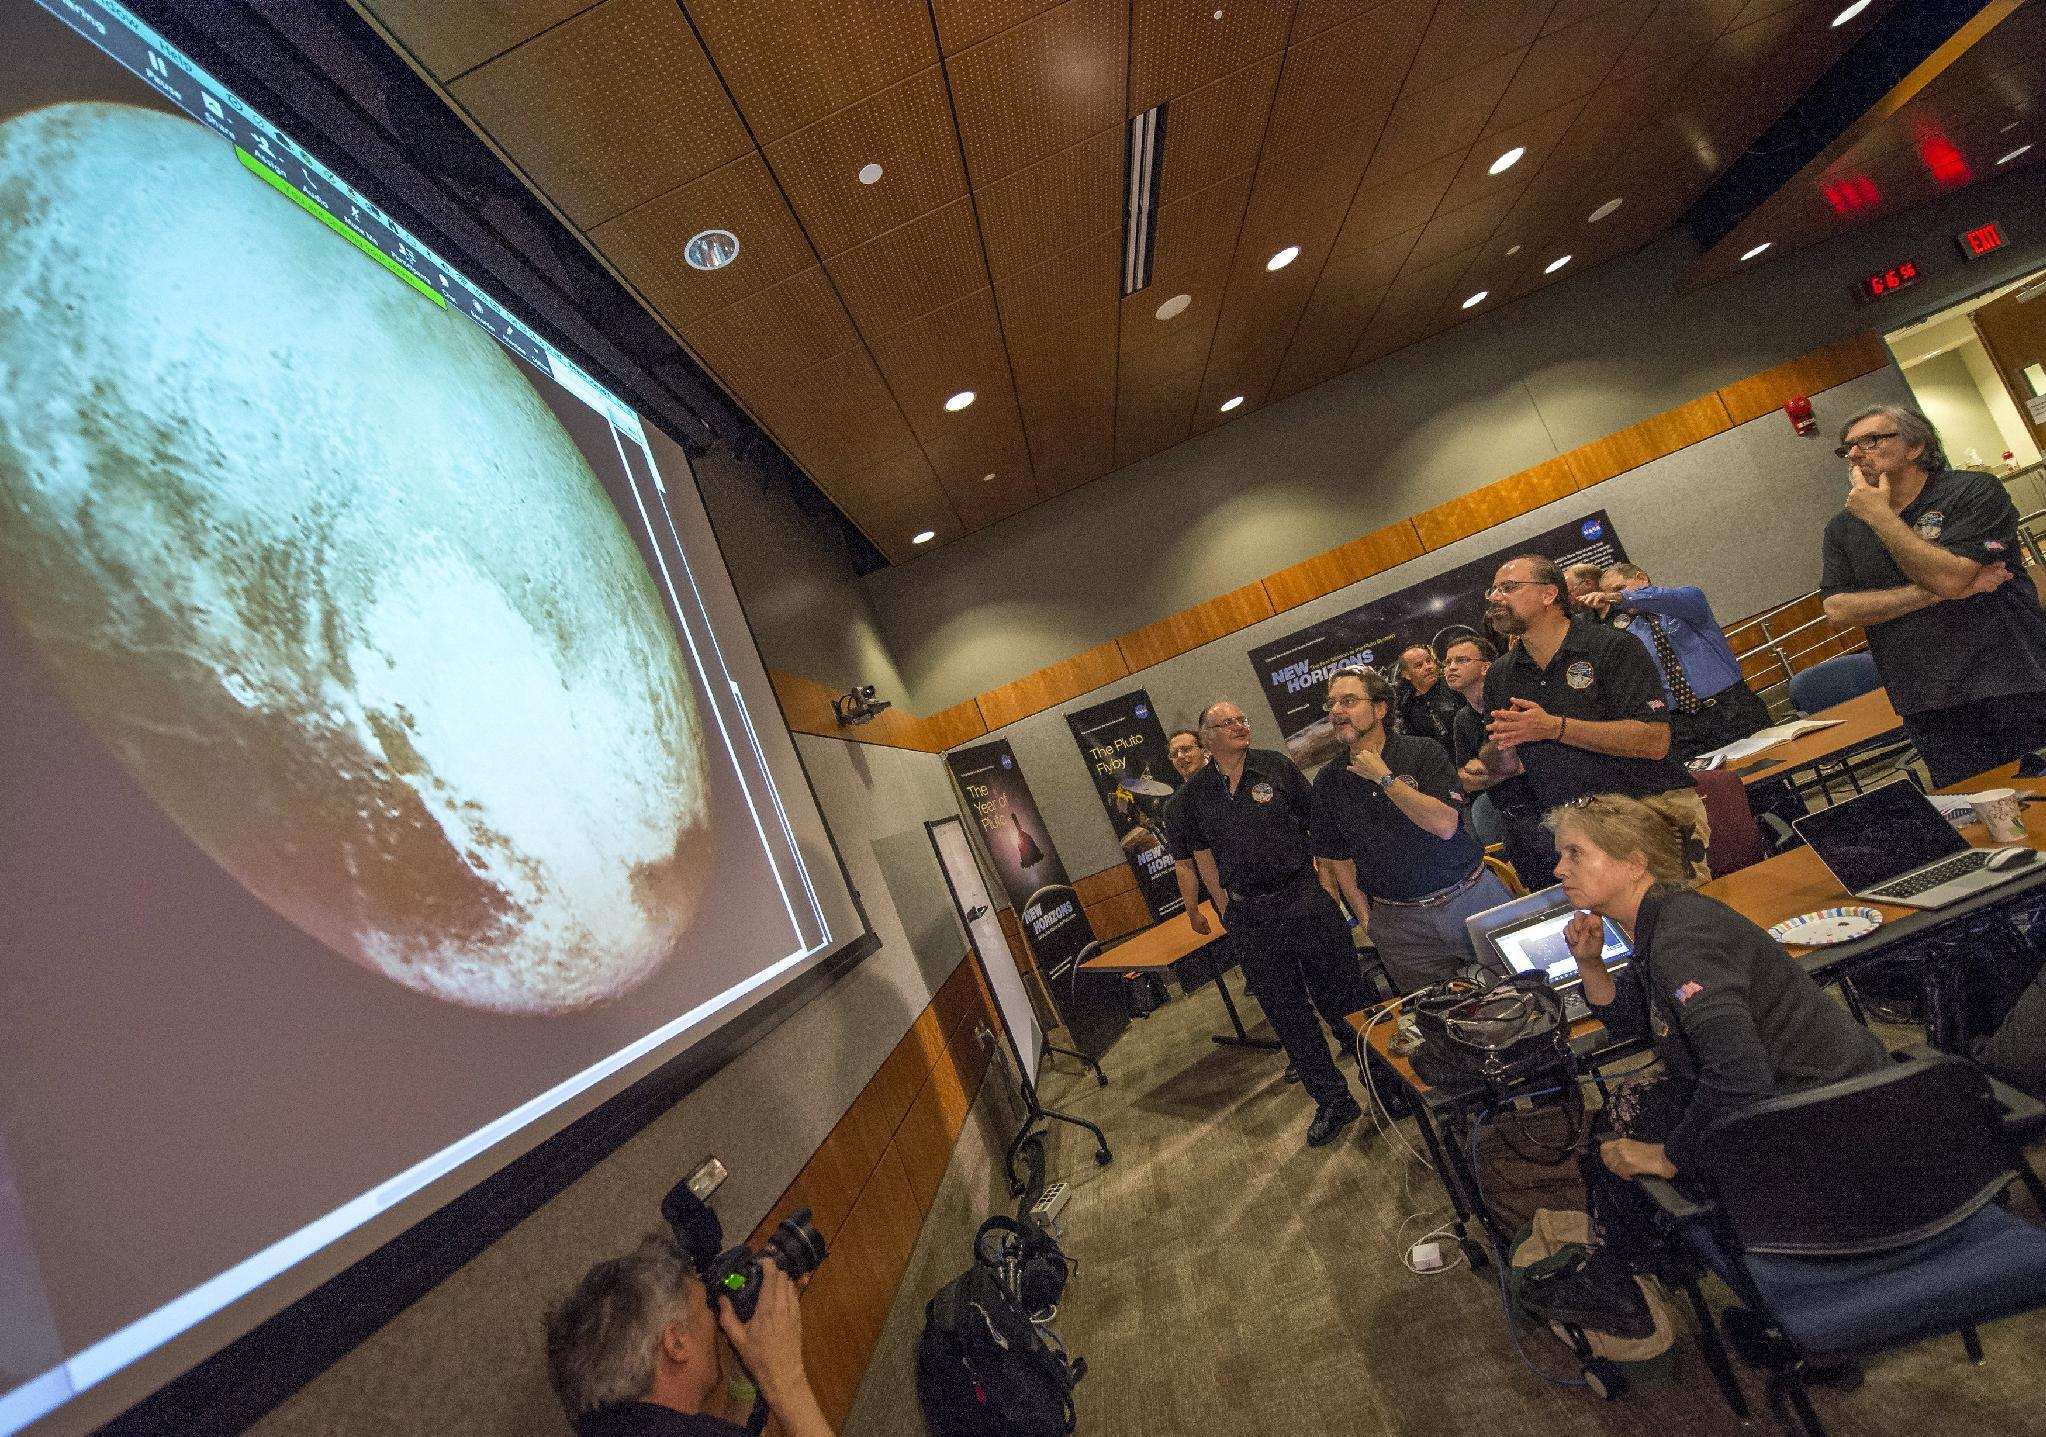 Members of the New Horizons science team react to seeing the spacecraft's last and sharpest image of Pluto before closest approach later in the day at the Johns Hopkins University Applied Physics Laboratory (APL) in Laurel